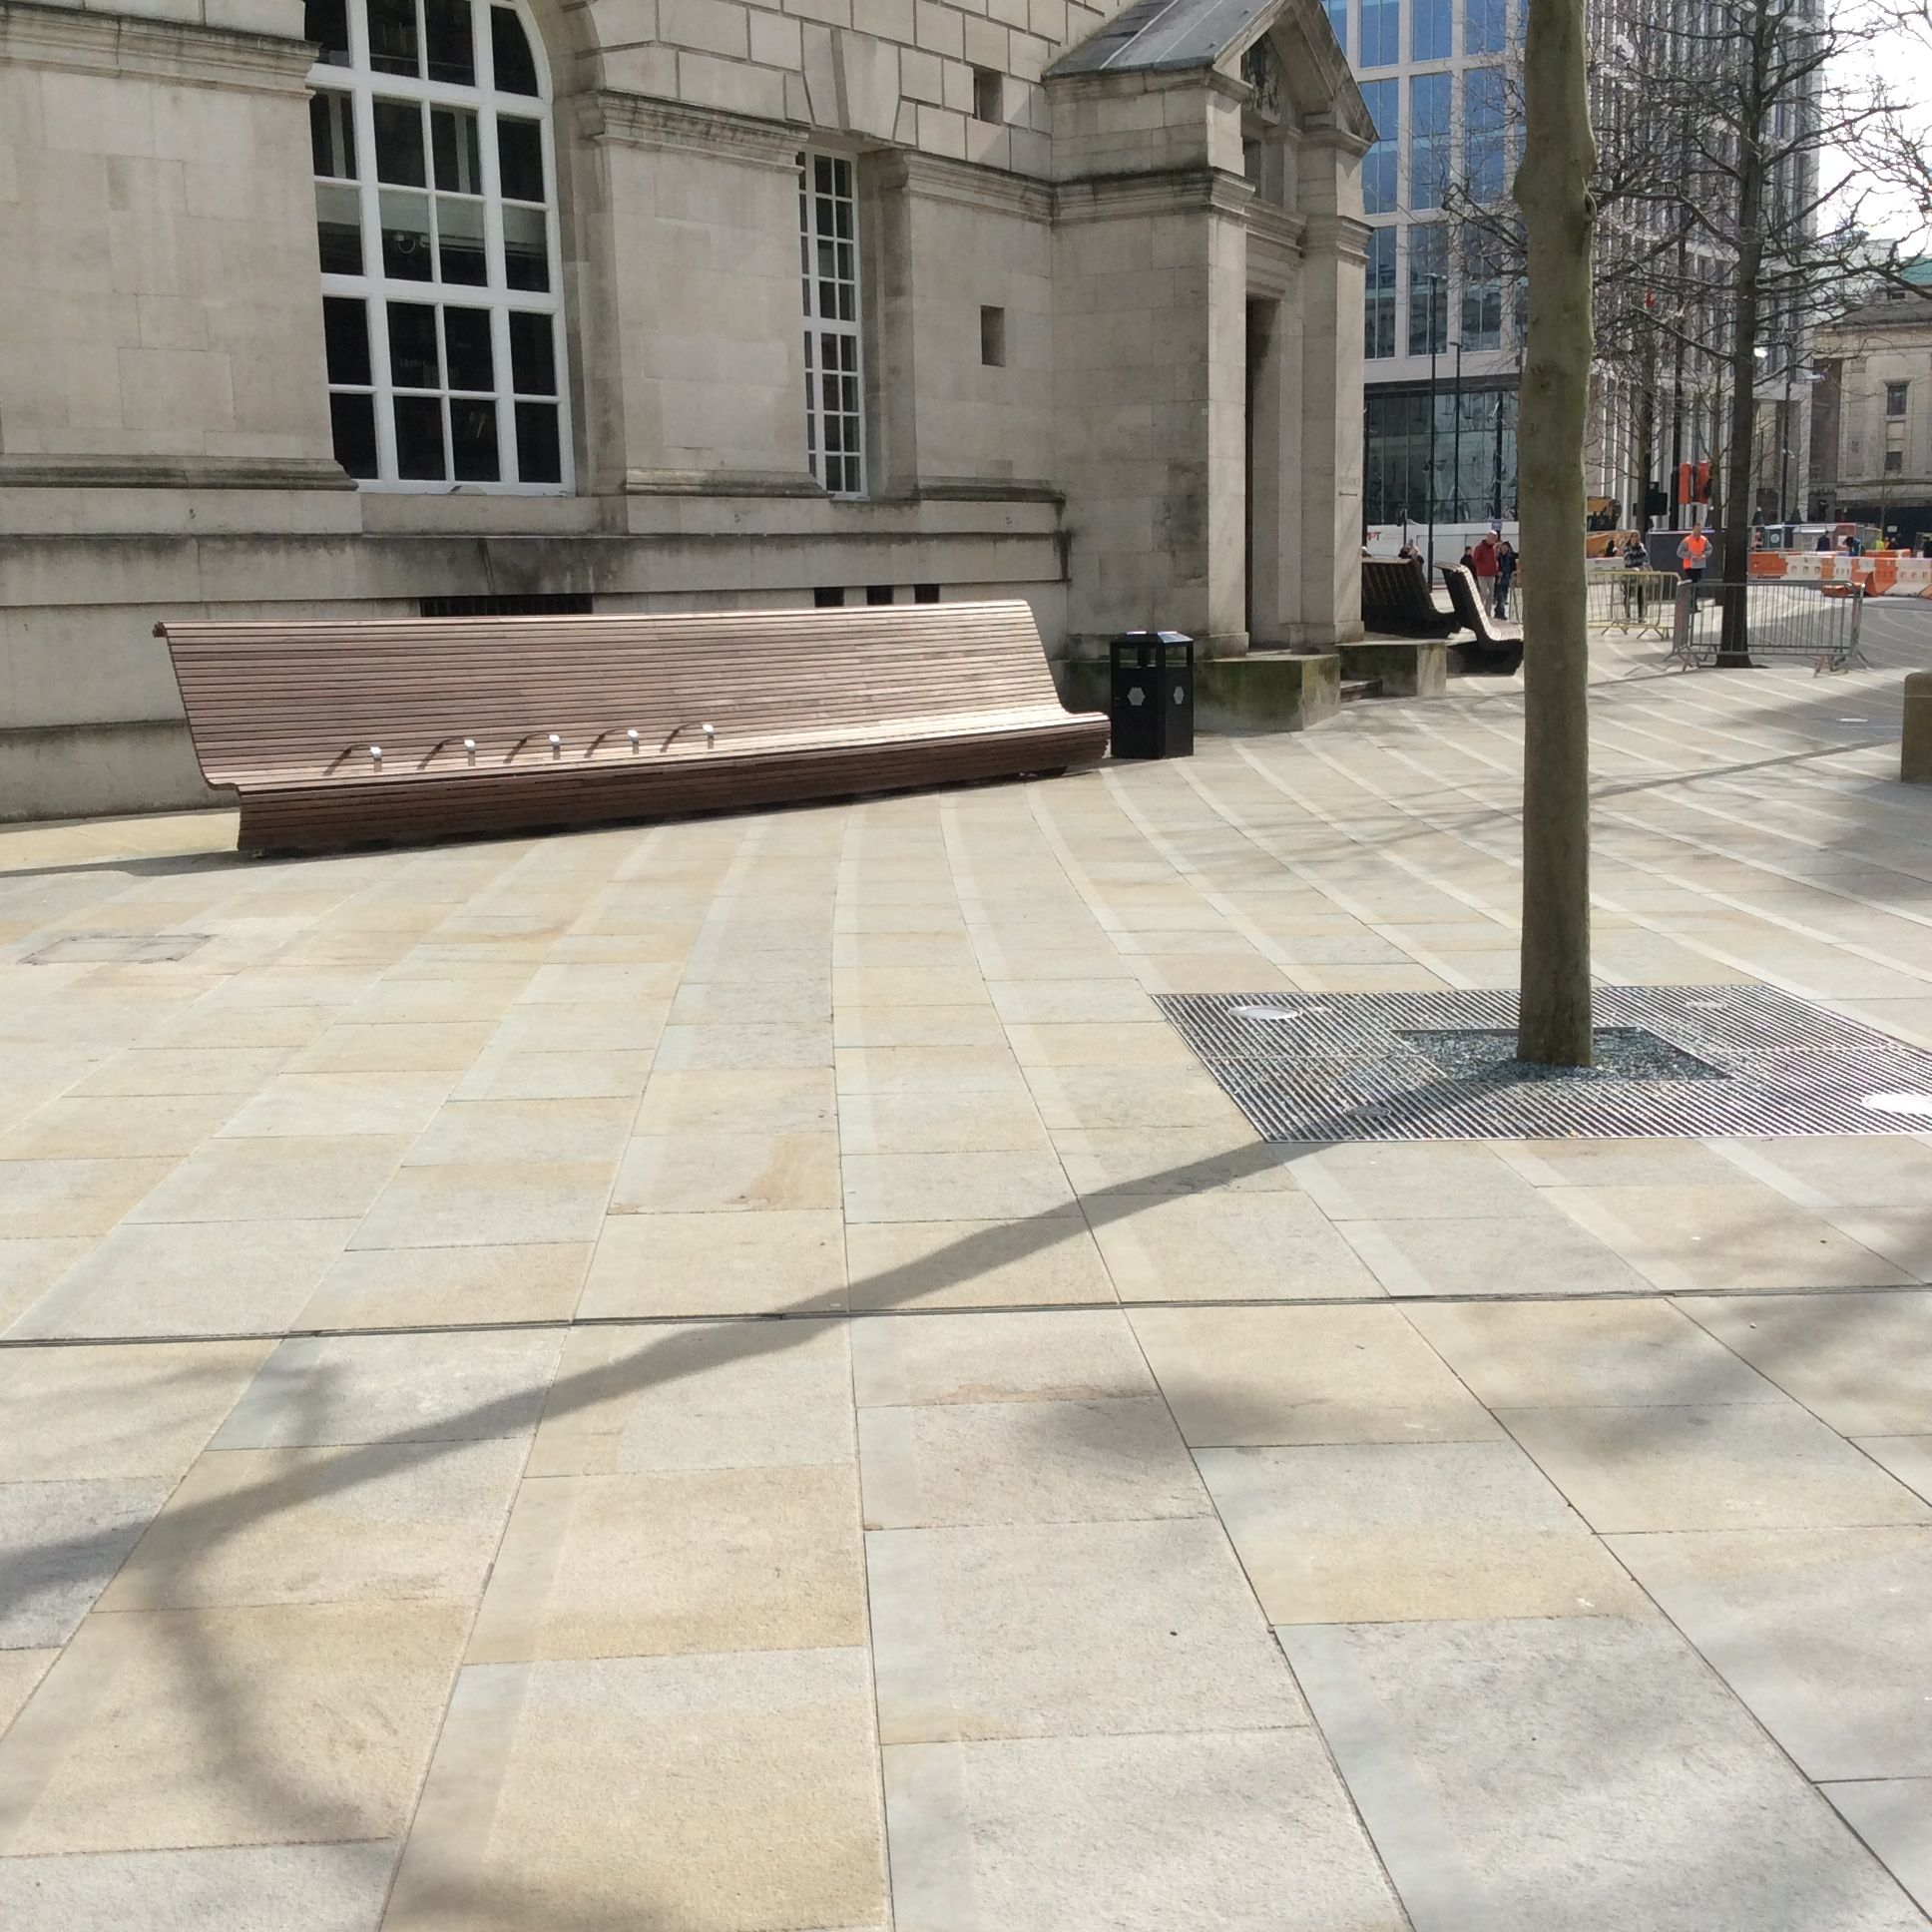 St Peter S Square Manchester Westmoor Crest Yorkstone Www Marshalls Co Uk Outdoor Decor Patio Saint Peter Square